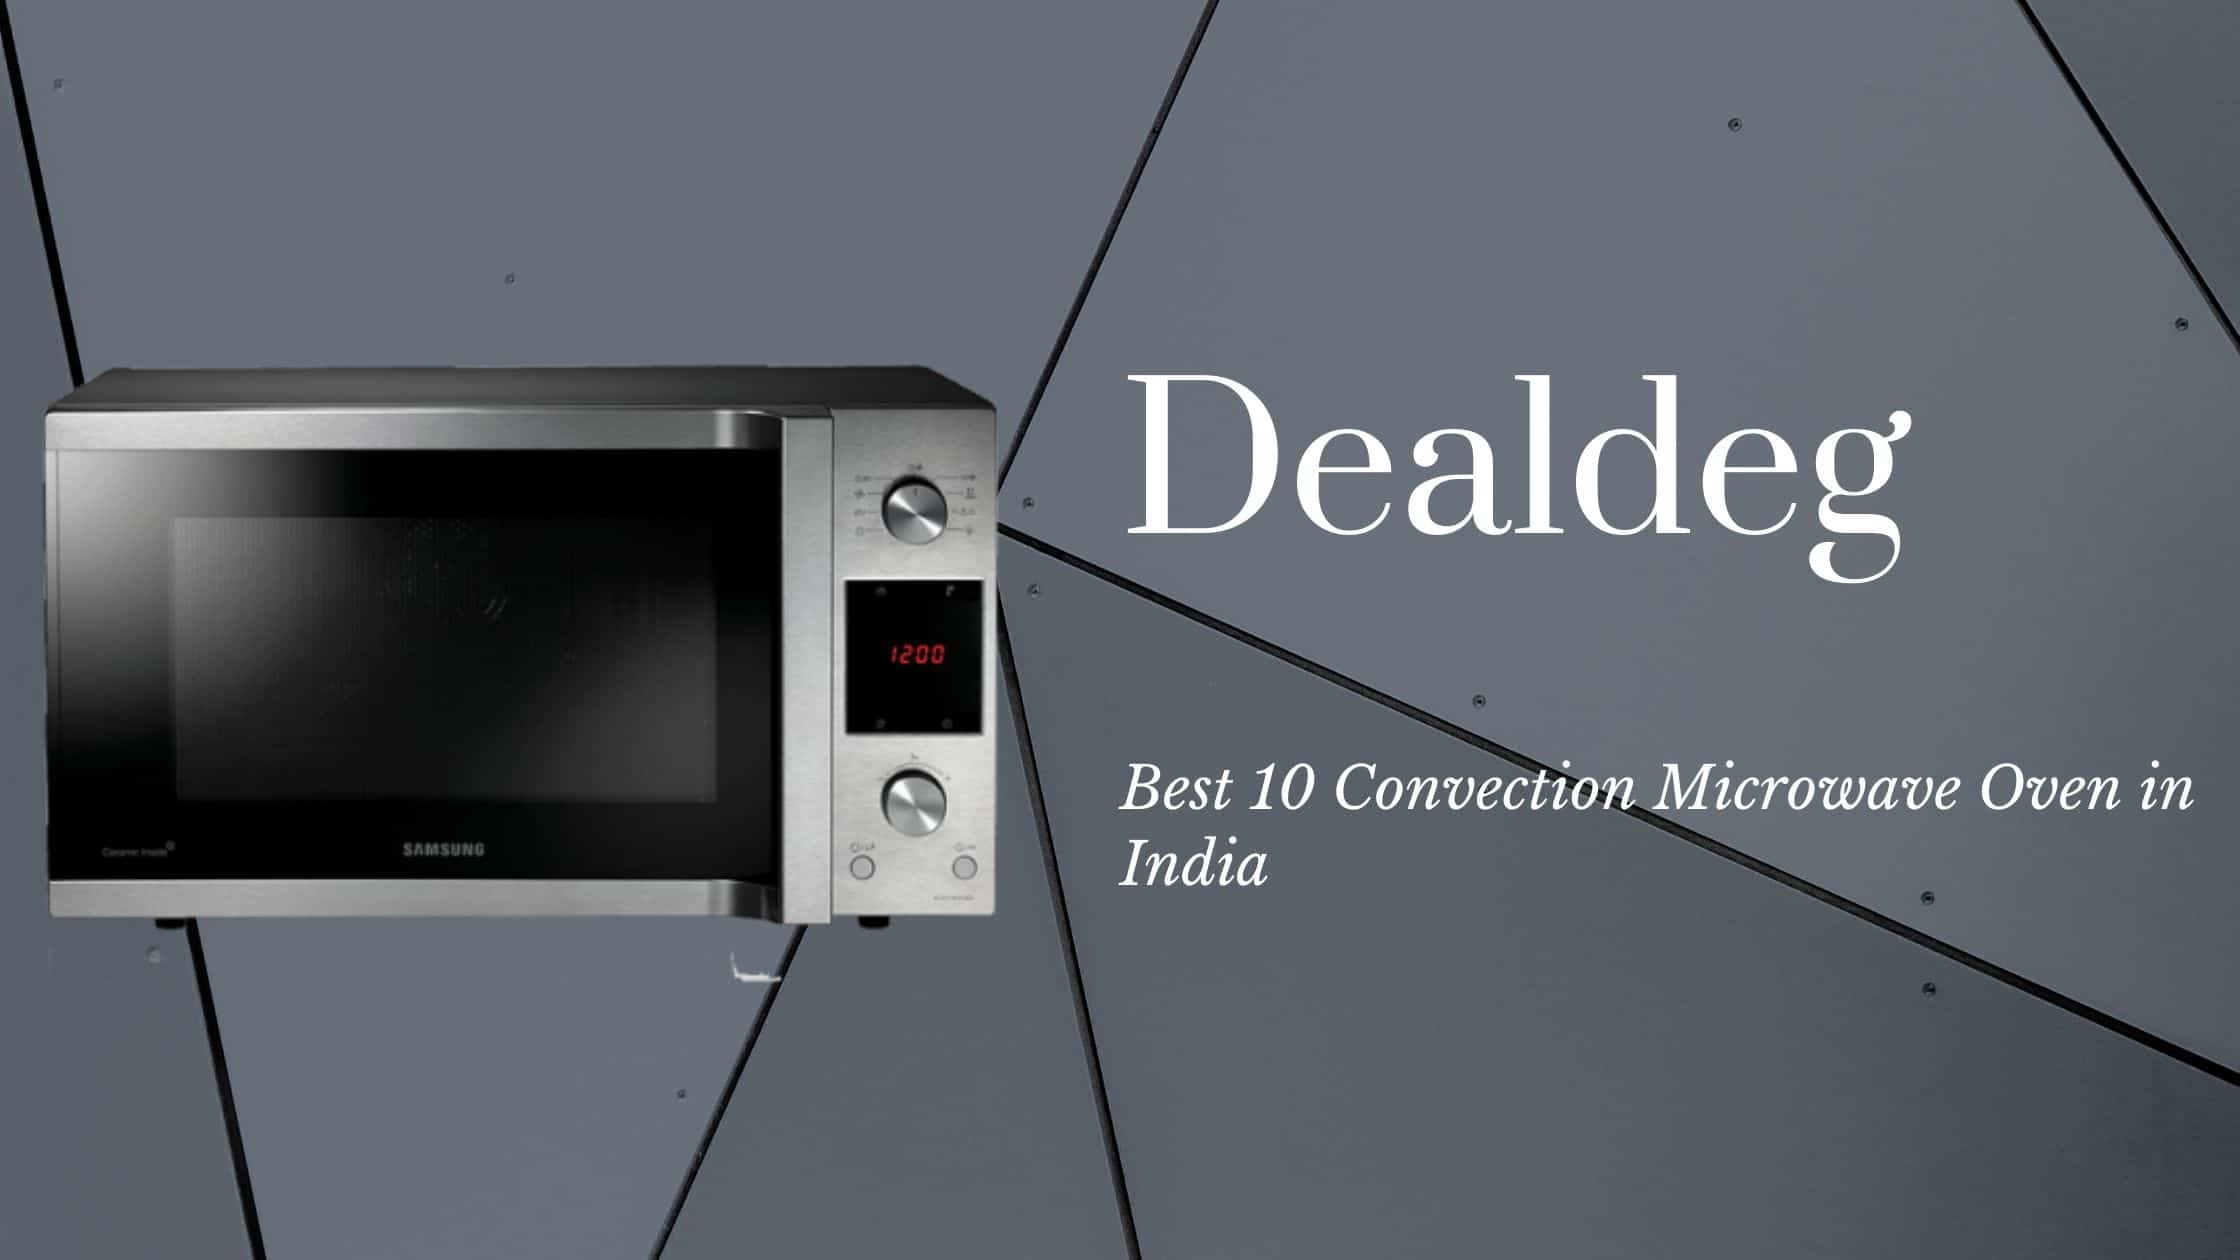 Best 10 Convection Microwave Oven Rs. 9800.